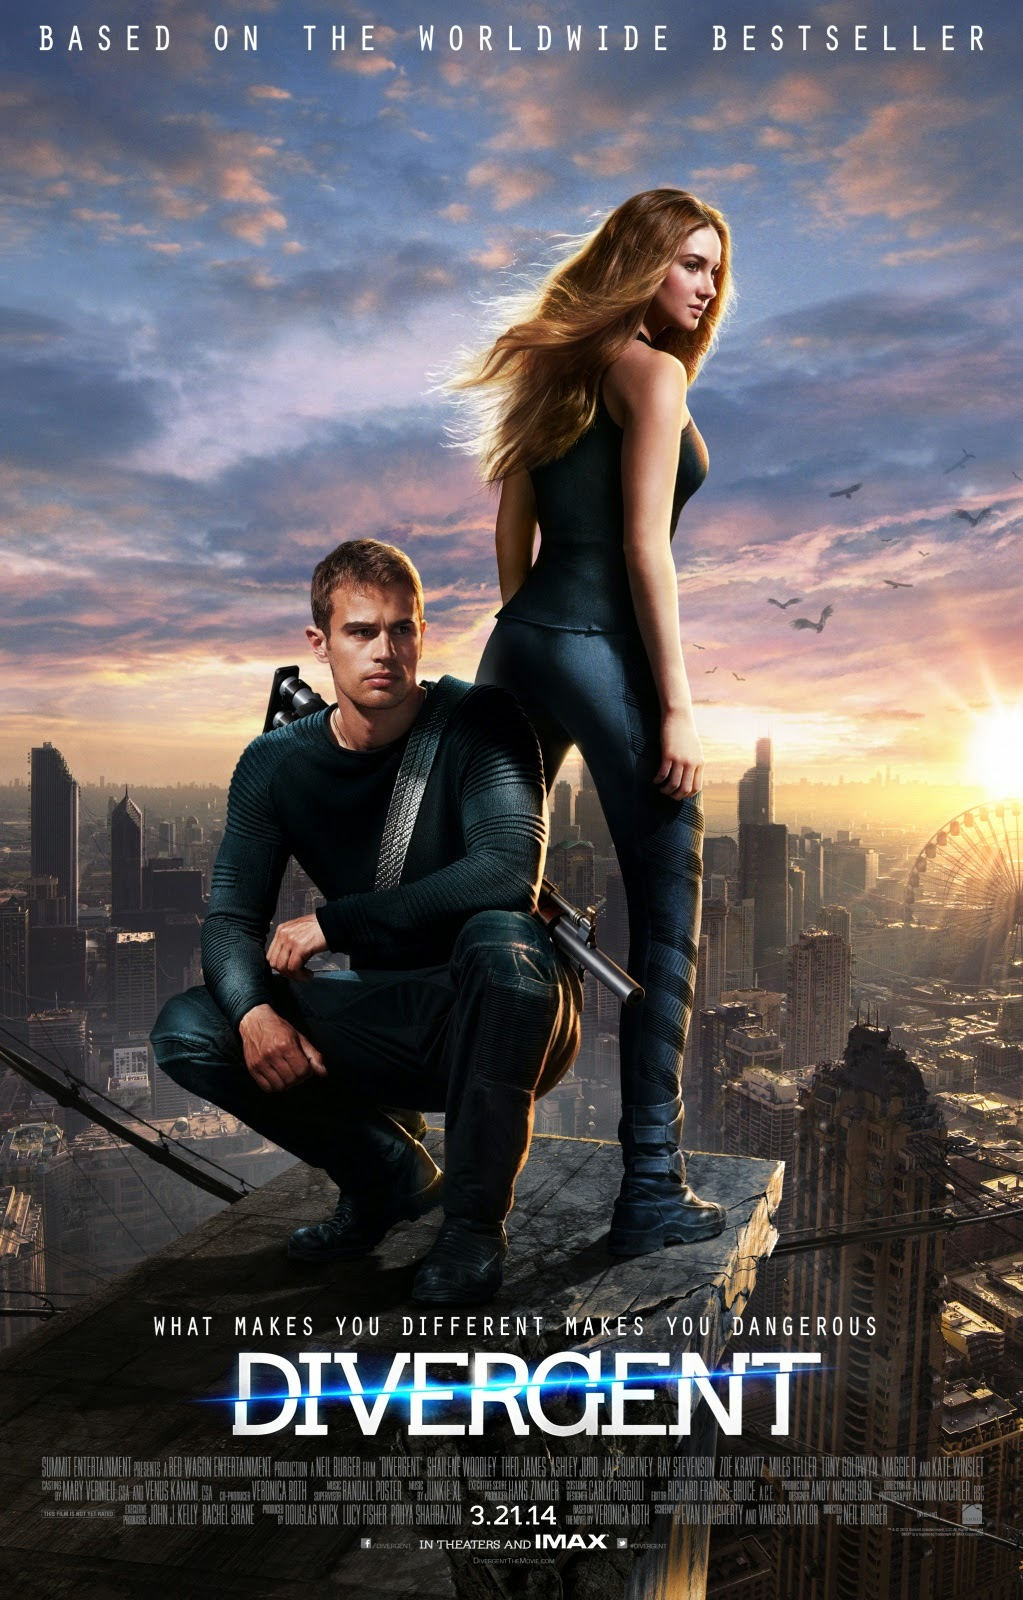 Divergent-2014-Movie-Poster-downloadfilm1001.blogspot.com.jpg